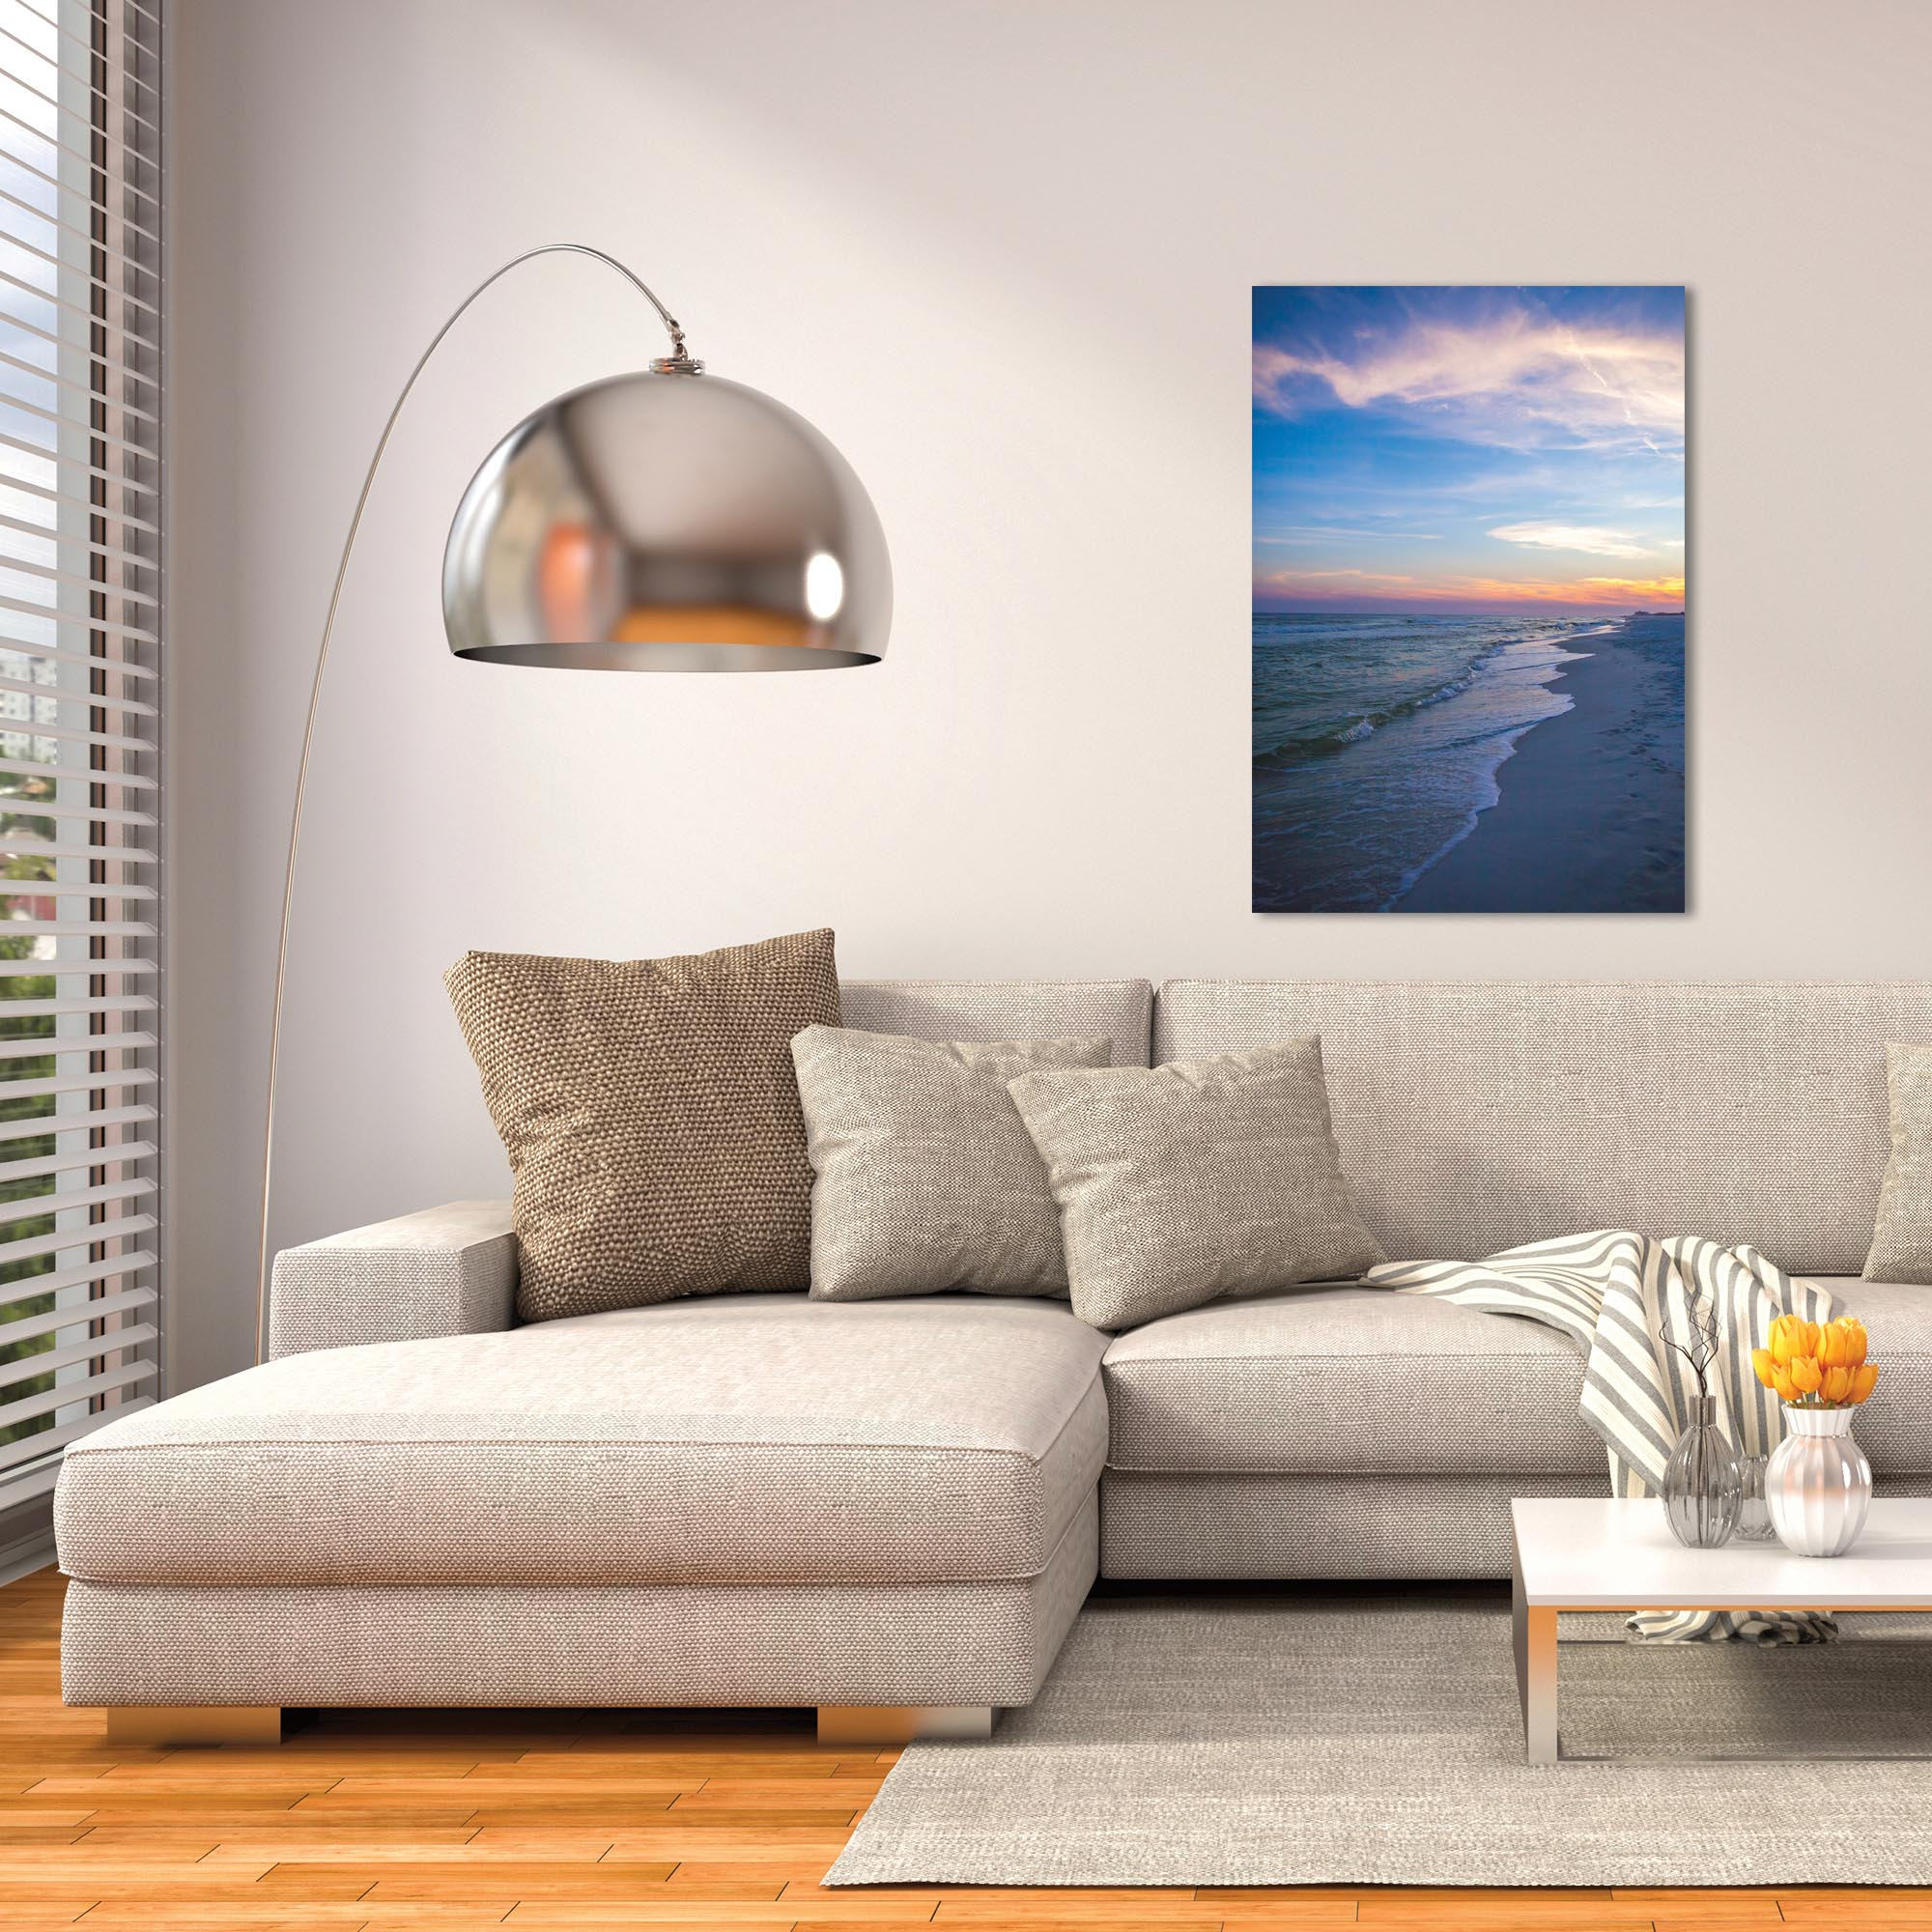 Coastal Wall Art 'Sunset Shores' - Romantic Sunset Decor on Metal or Plexiglass - Lifestyle View